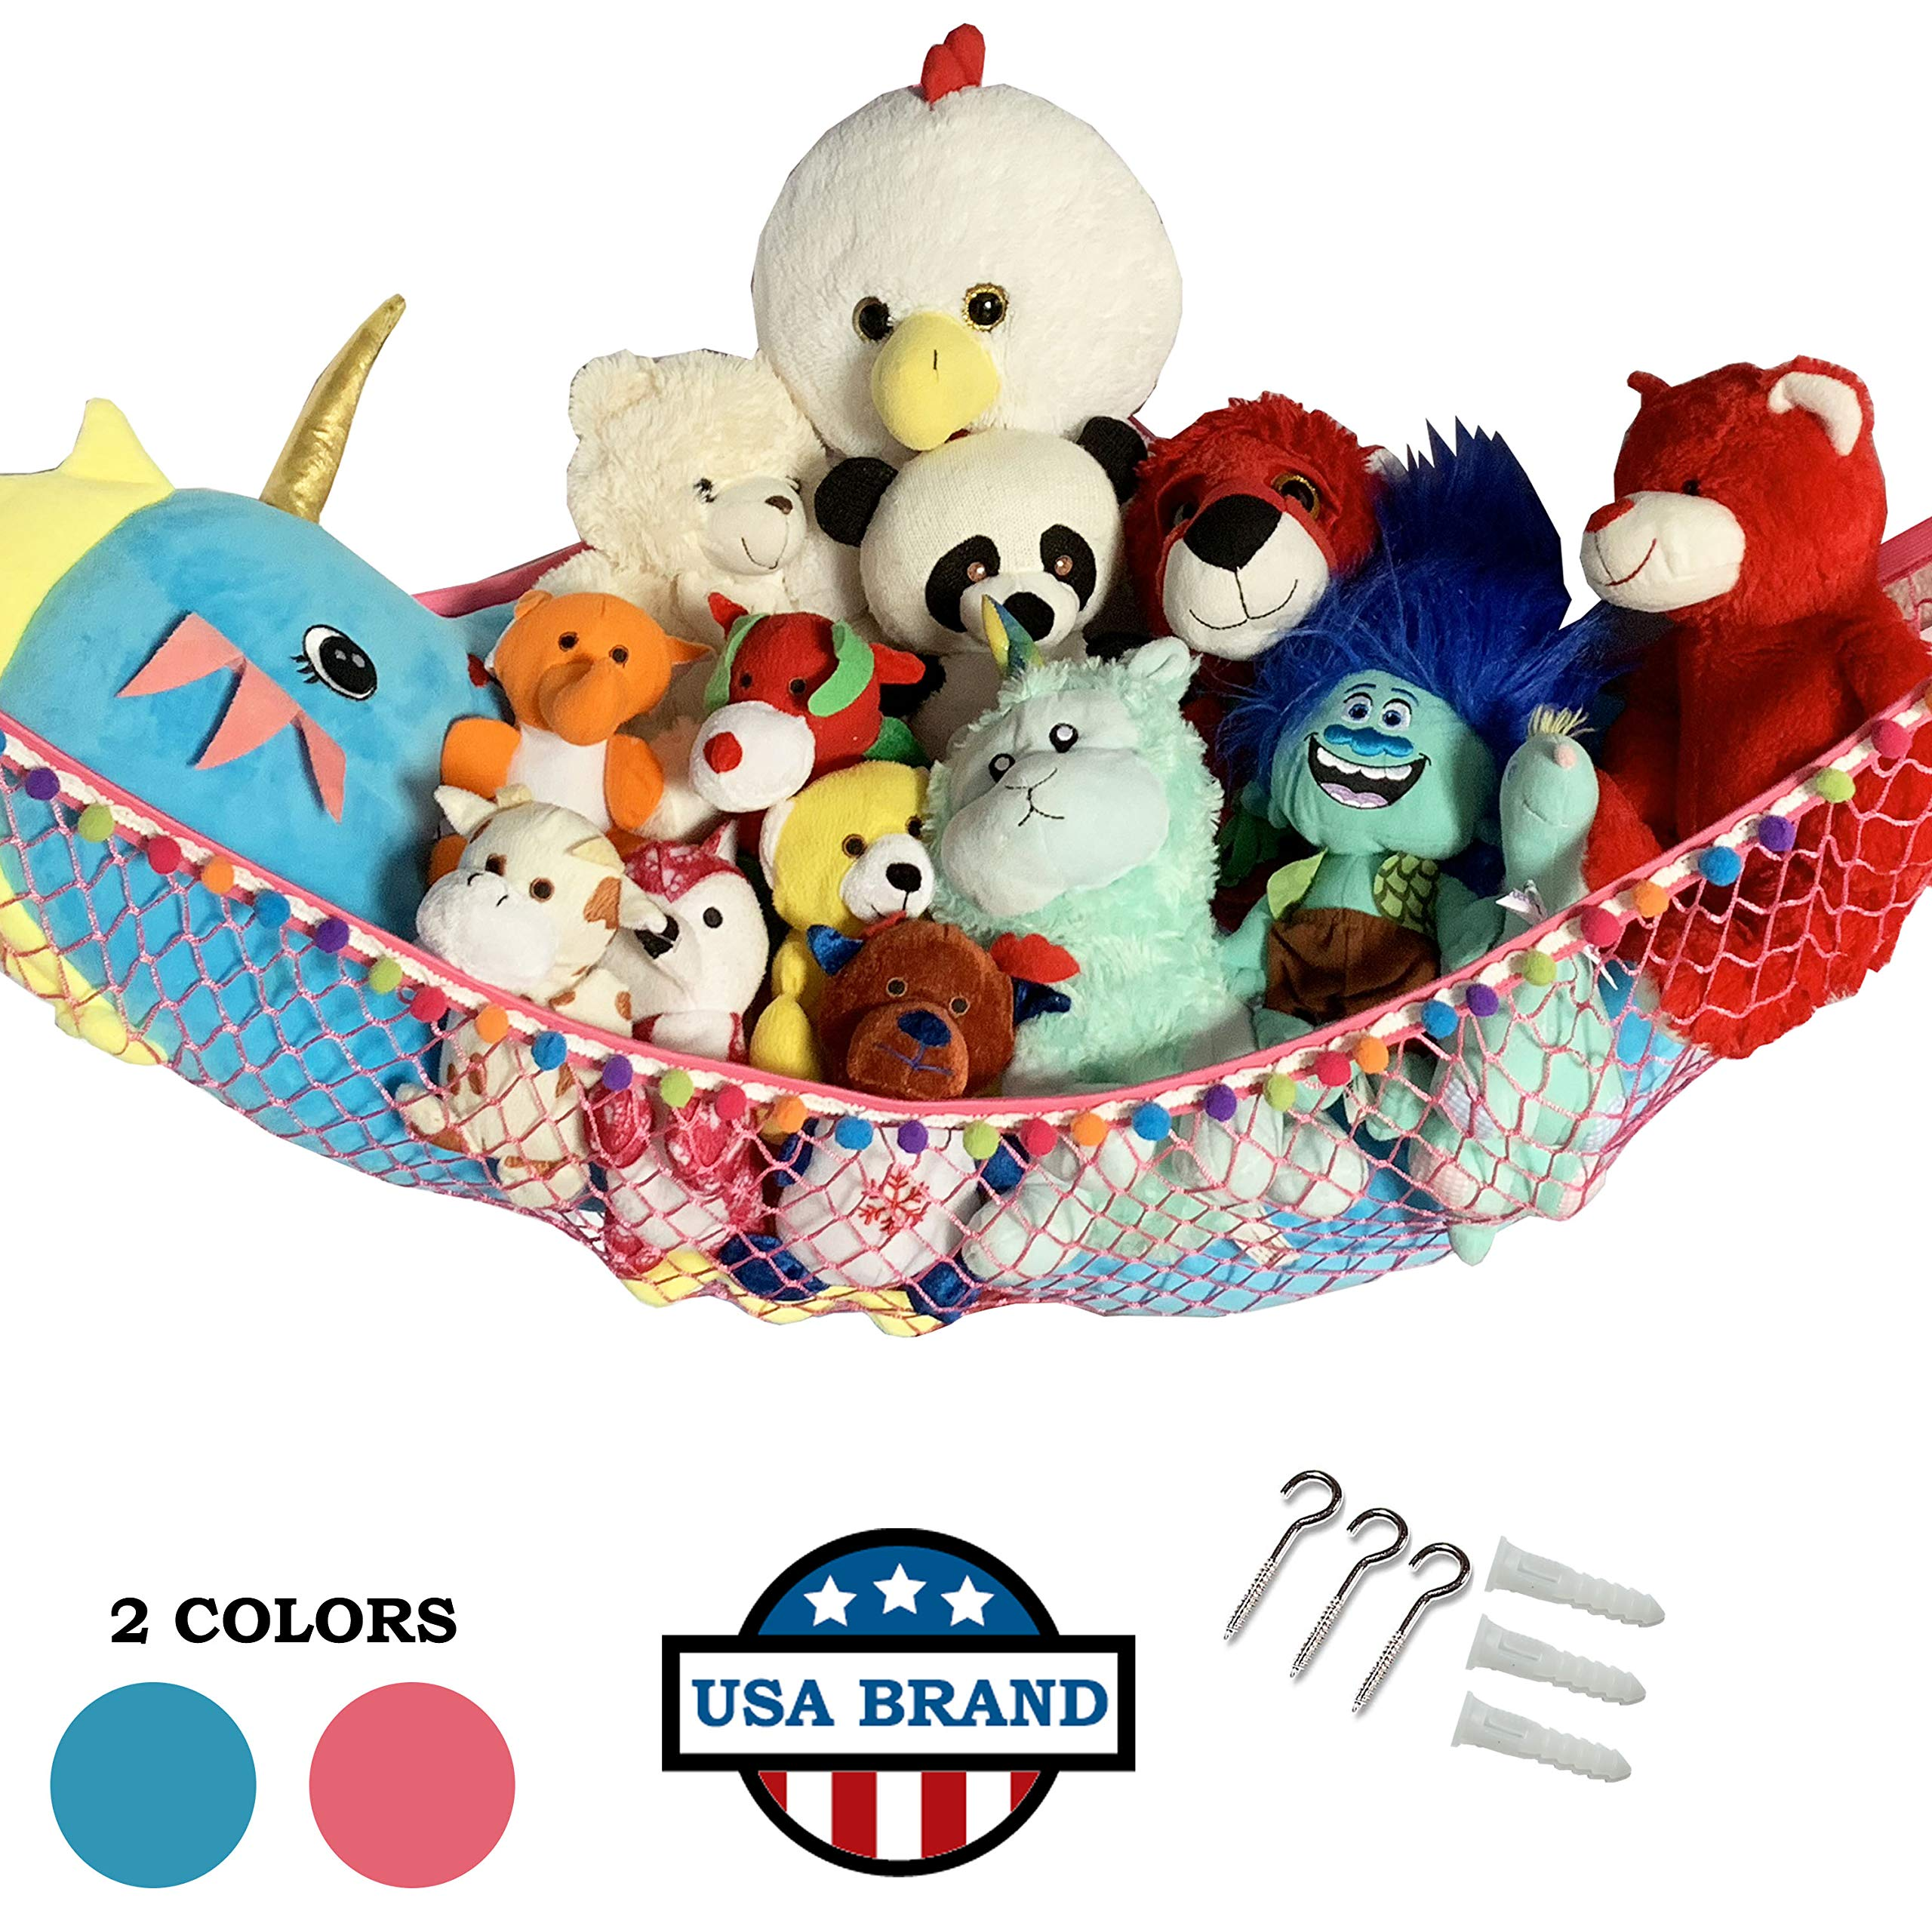 HOME4 Stuffed Animal Toy Storage Hammock Net with Fun Poms Poms - Organize Small, Large, Or Giant Stuffed Animals (Pink) by HOME4